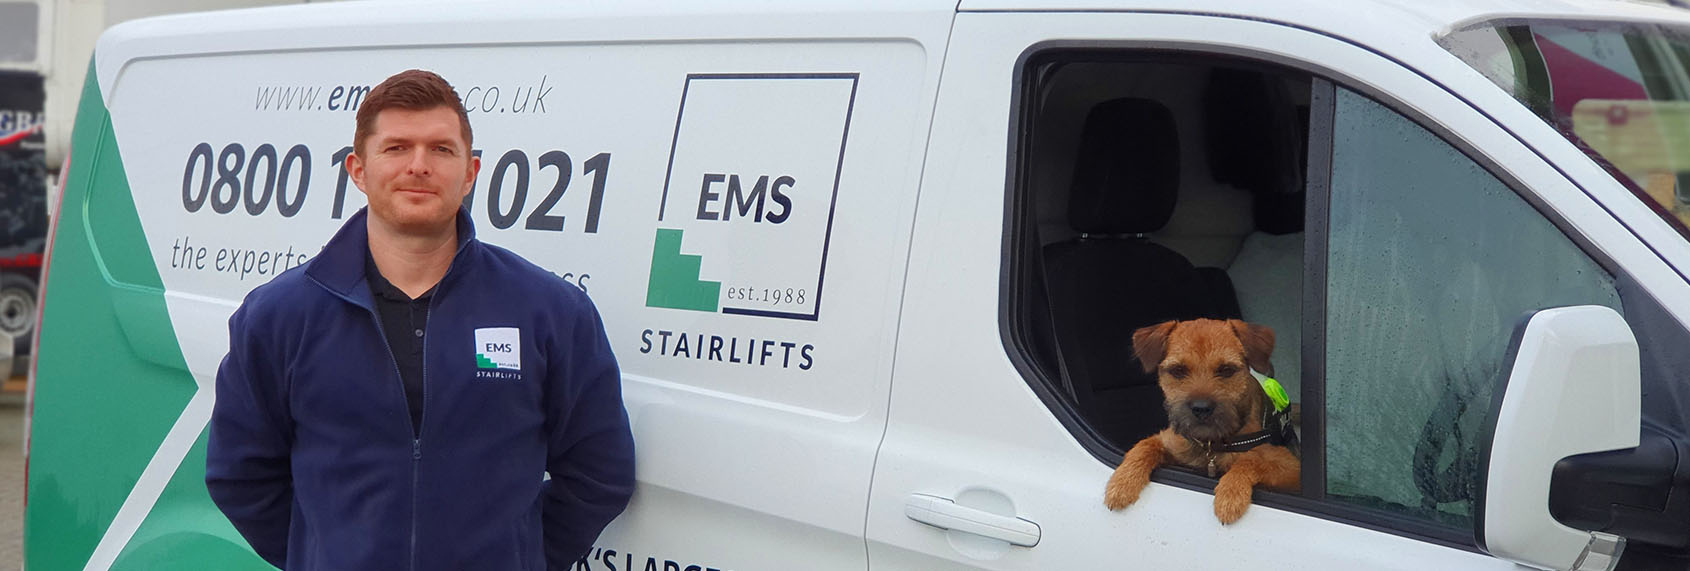 Mobility and Stairlift Specialist in front of EMS vans